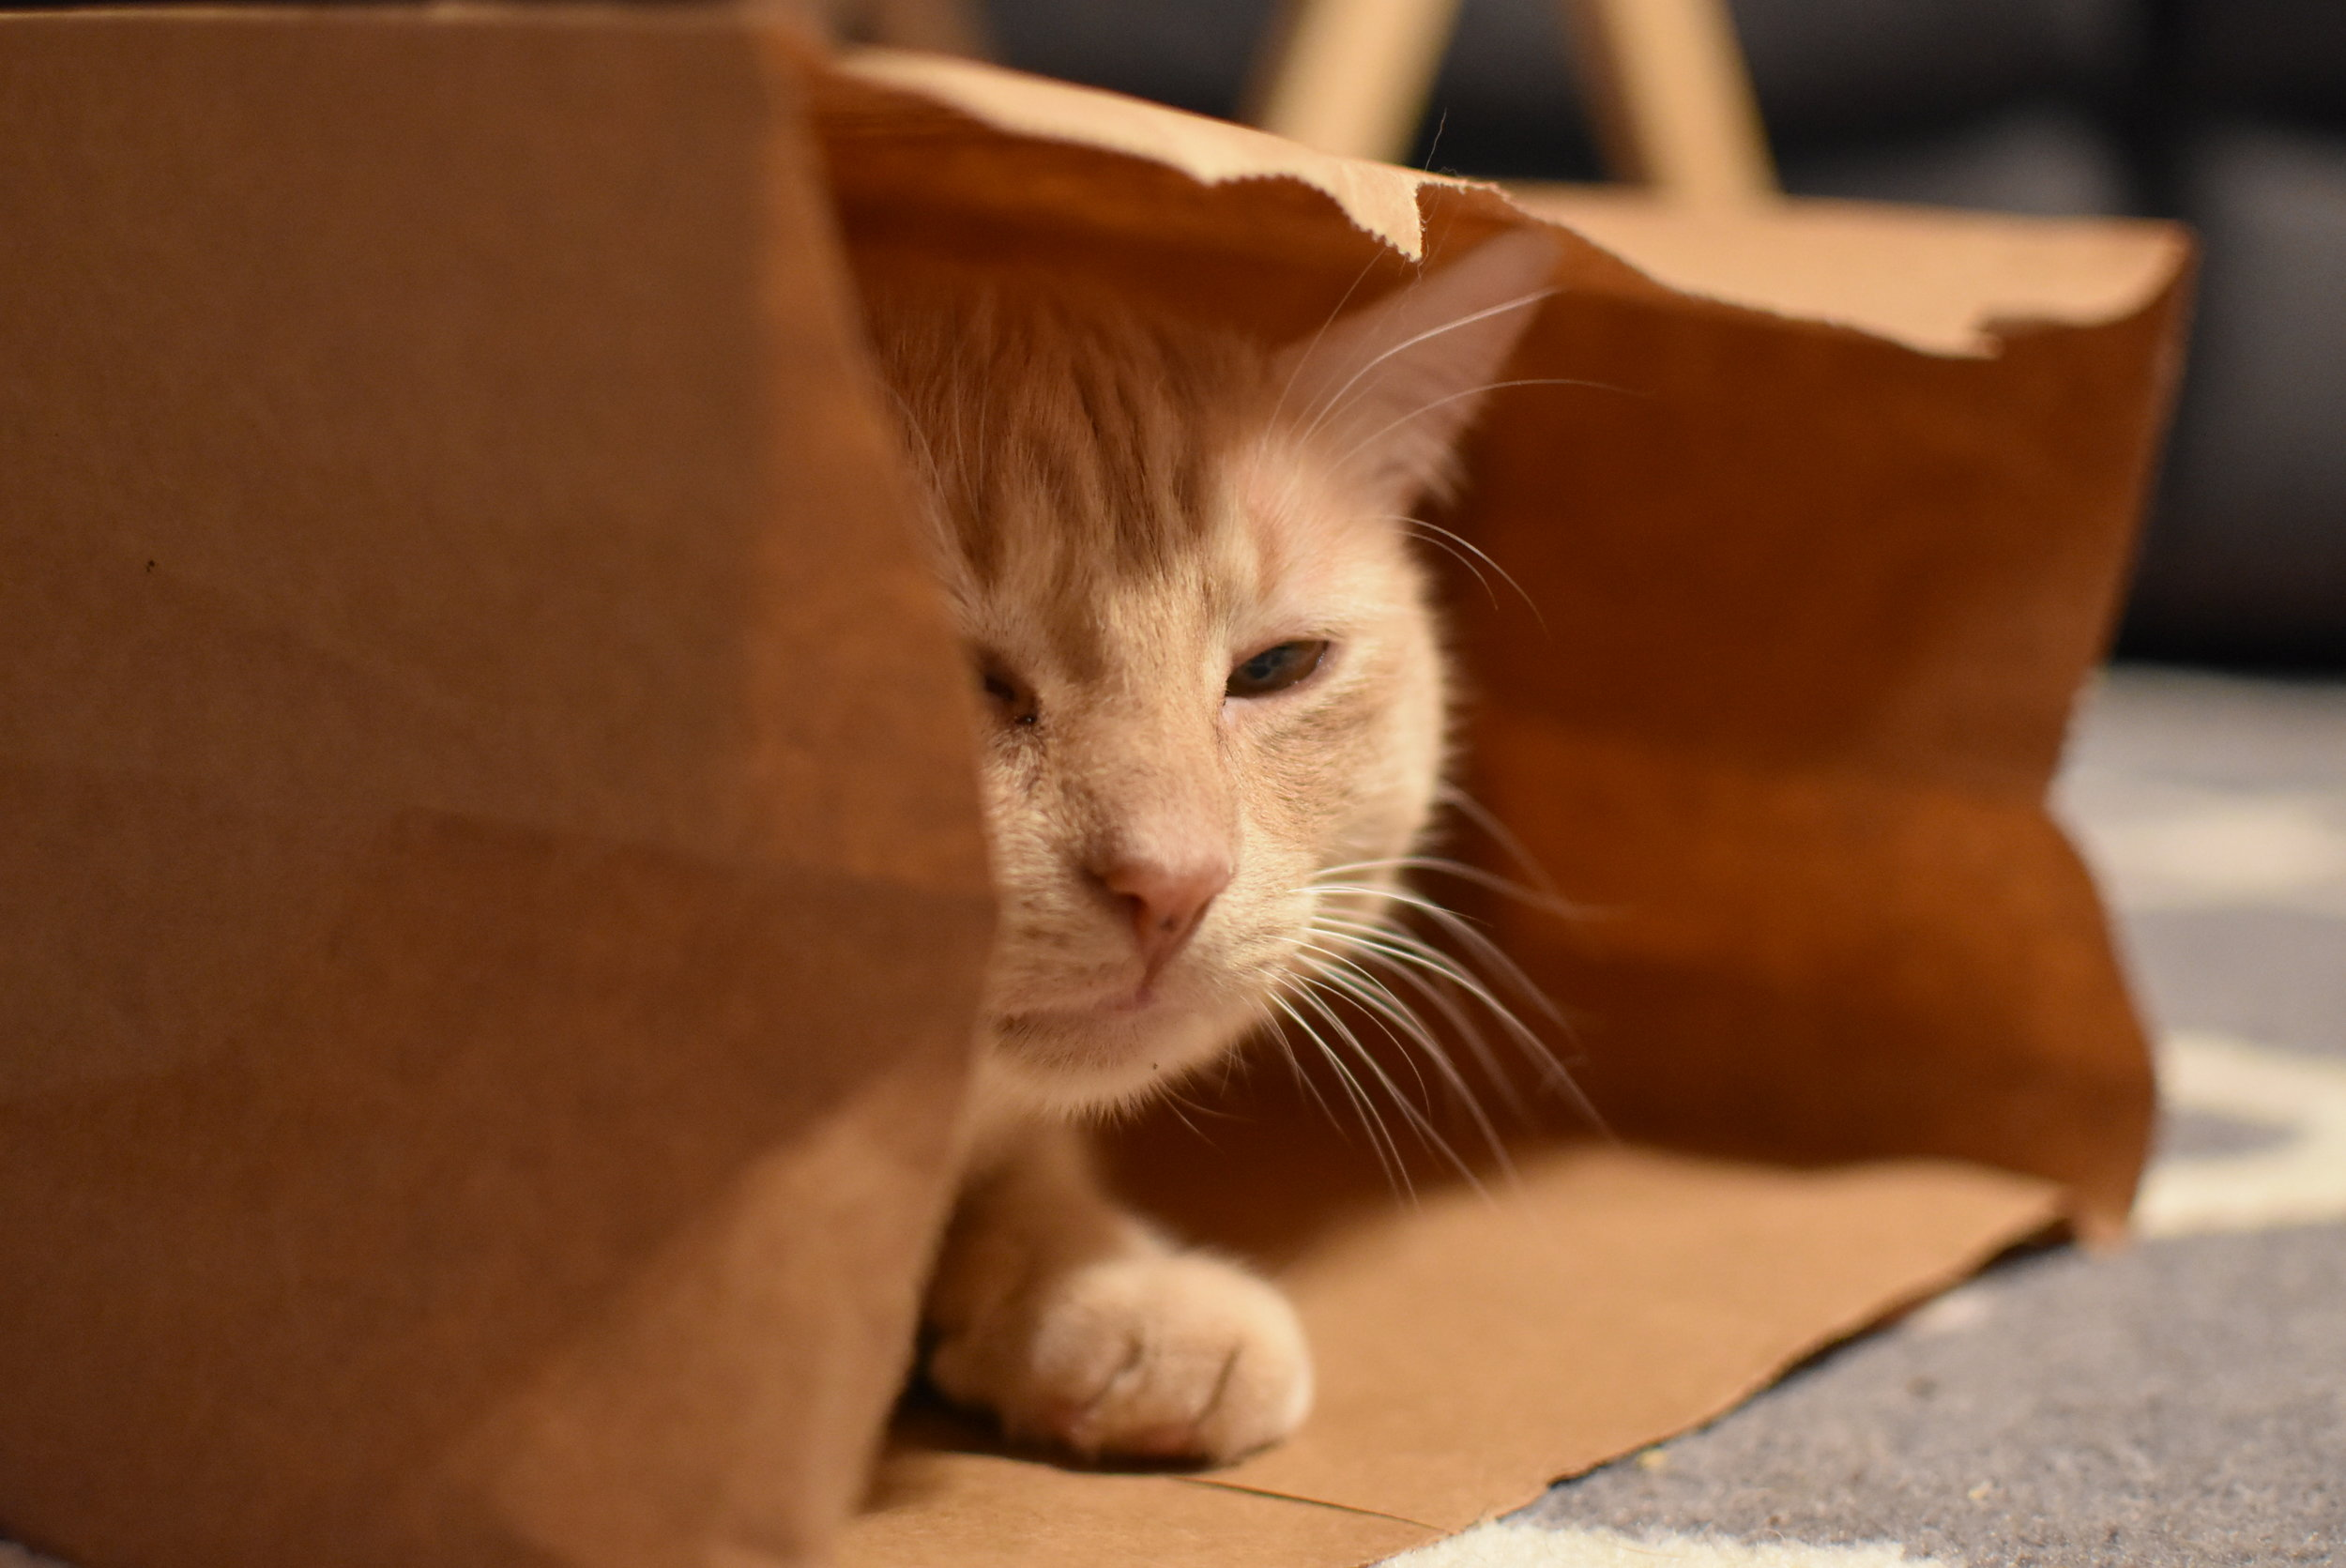 Yet another photo of the same orange kitty in a paper bag…this time squinting at the camera.